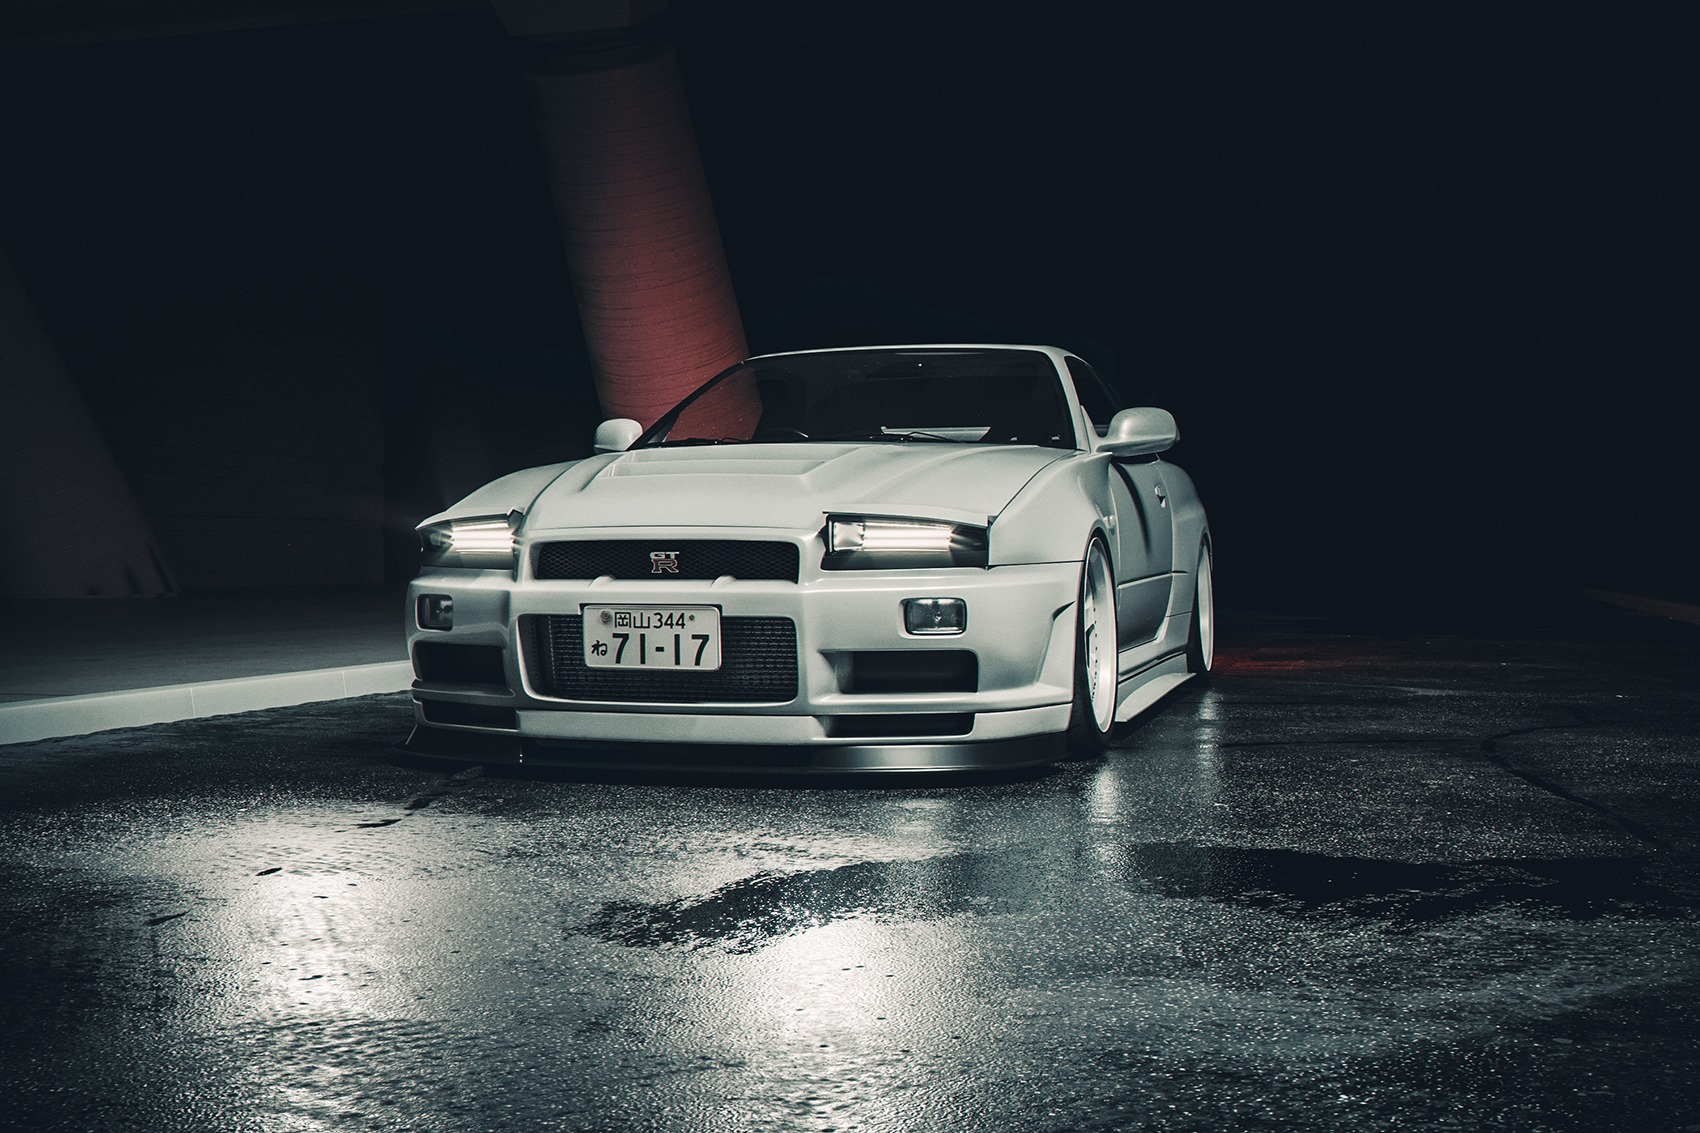 Nissan-GT-R-R34-pop-up-headligths-3